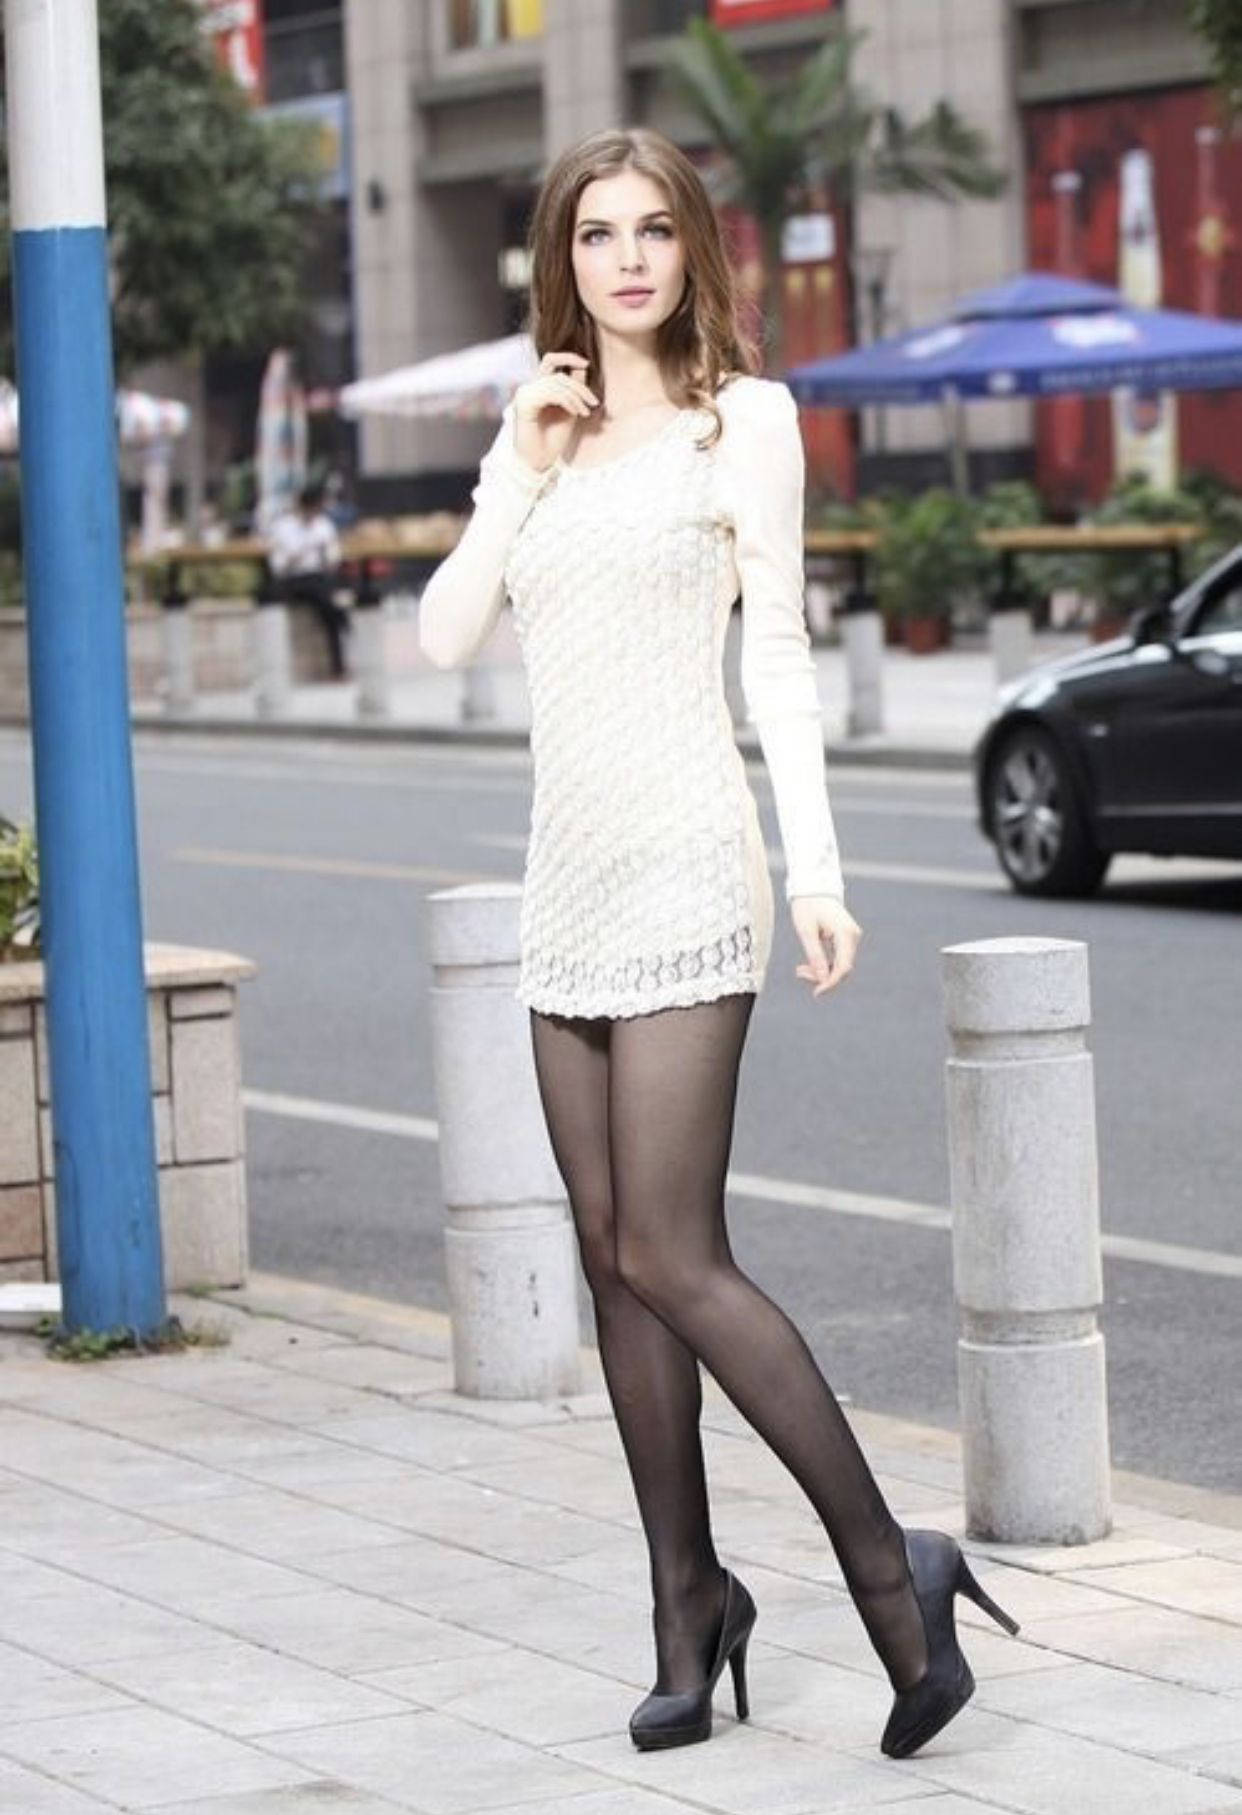 Pin By Paul Barnhardt On High Heels Fashion Pantyhose Outfits Short Dresses [ 1815 x 1242 Pixel ]